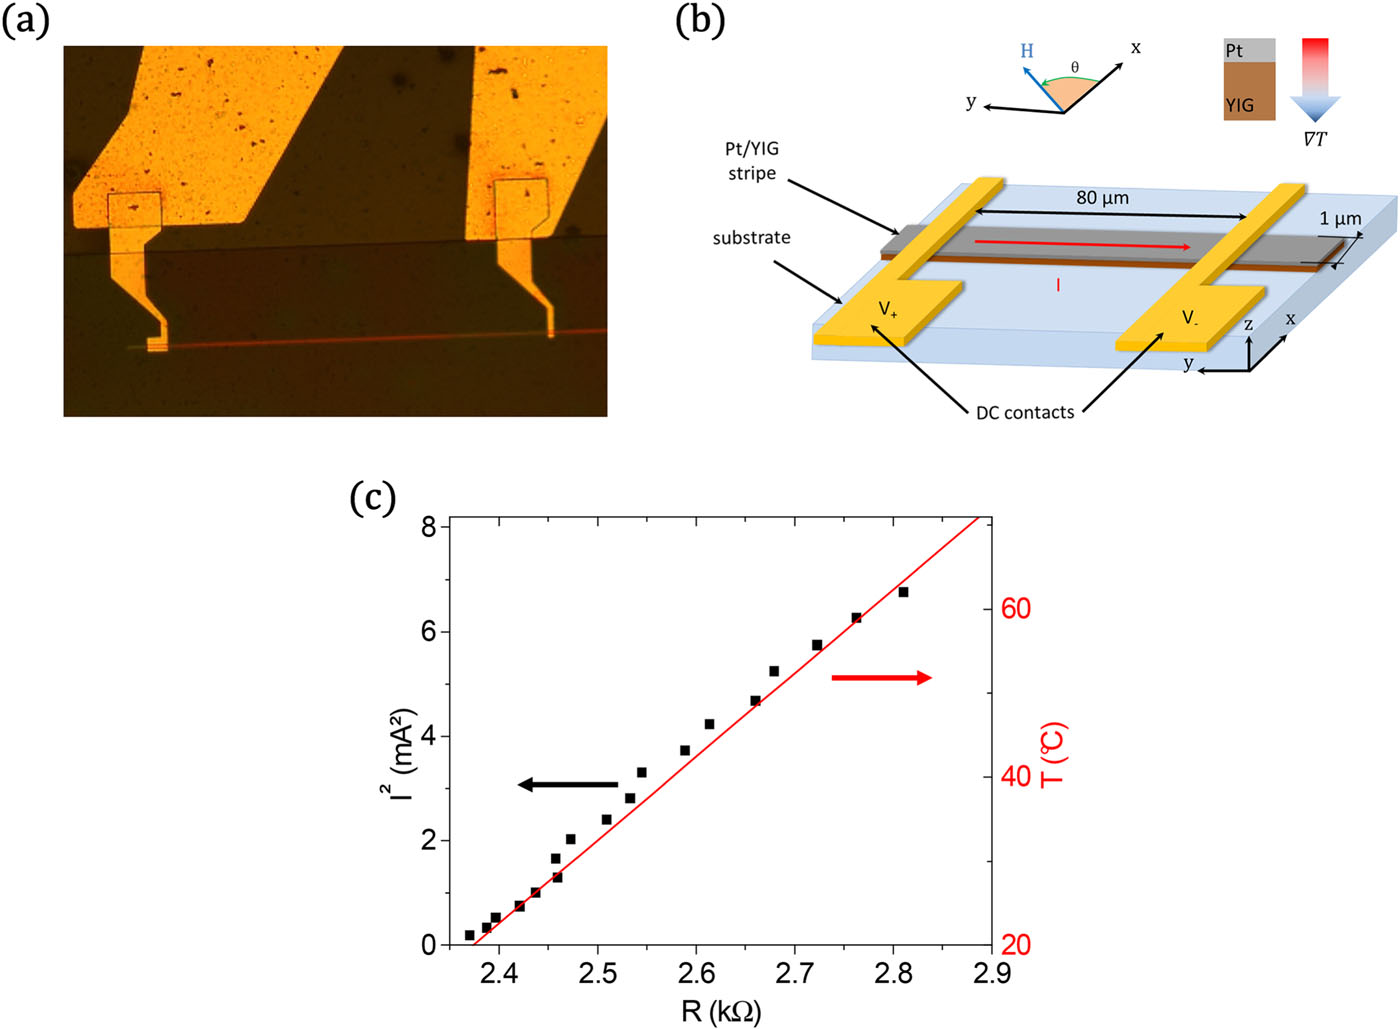 Spin Seebeck effect in nanometer-thick YIG micro-fabricated strips